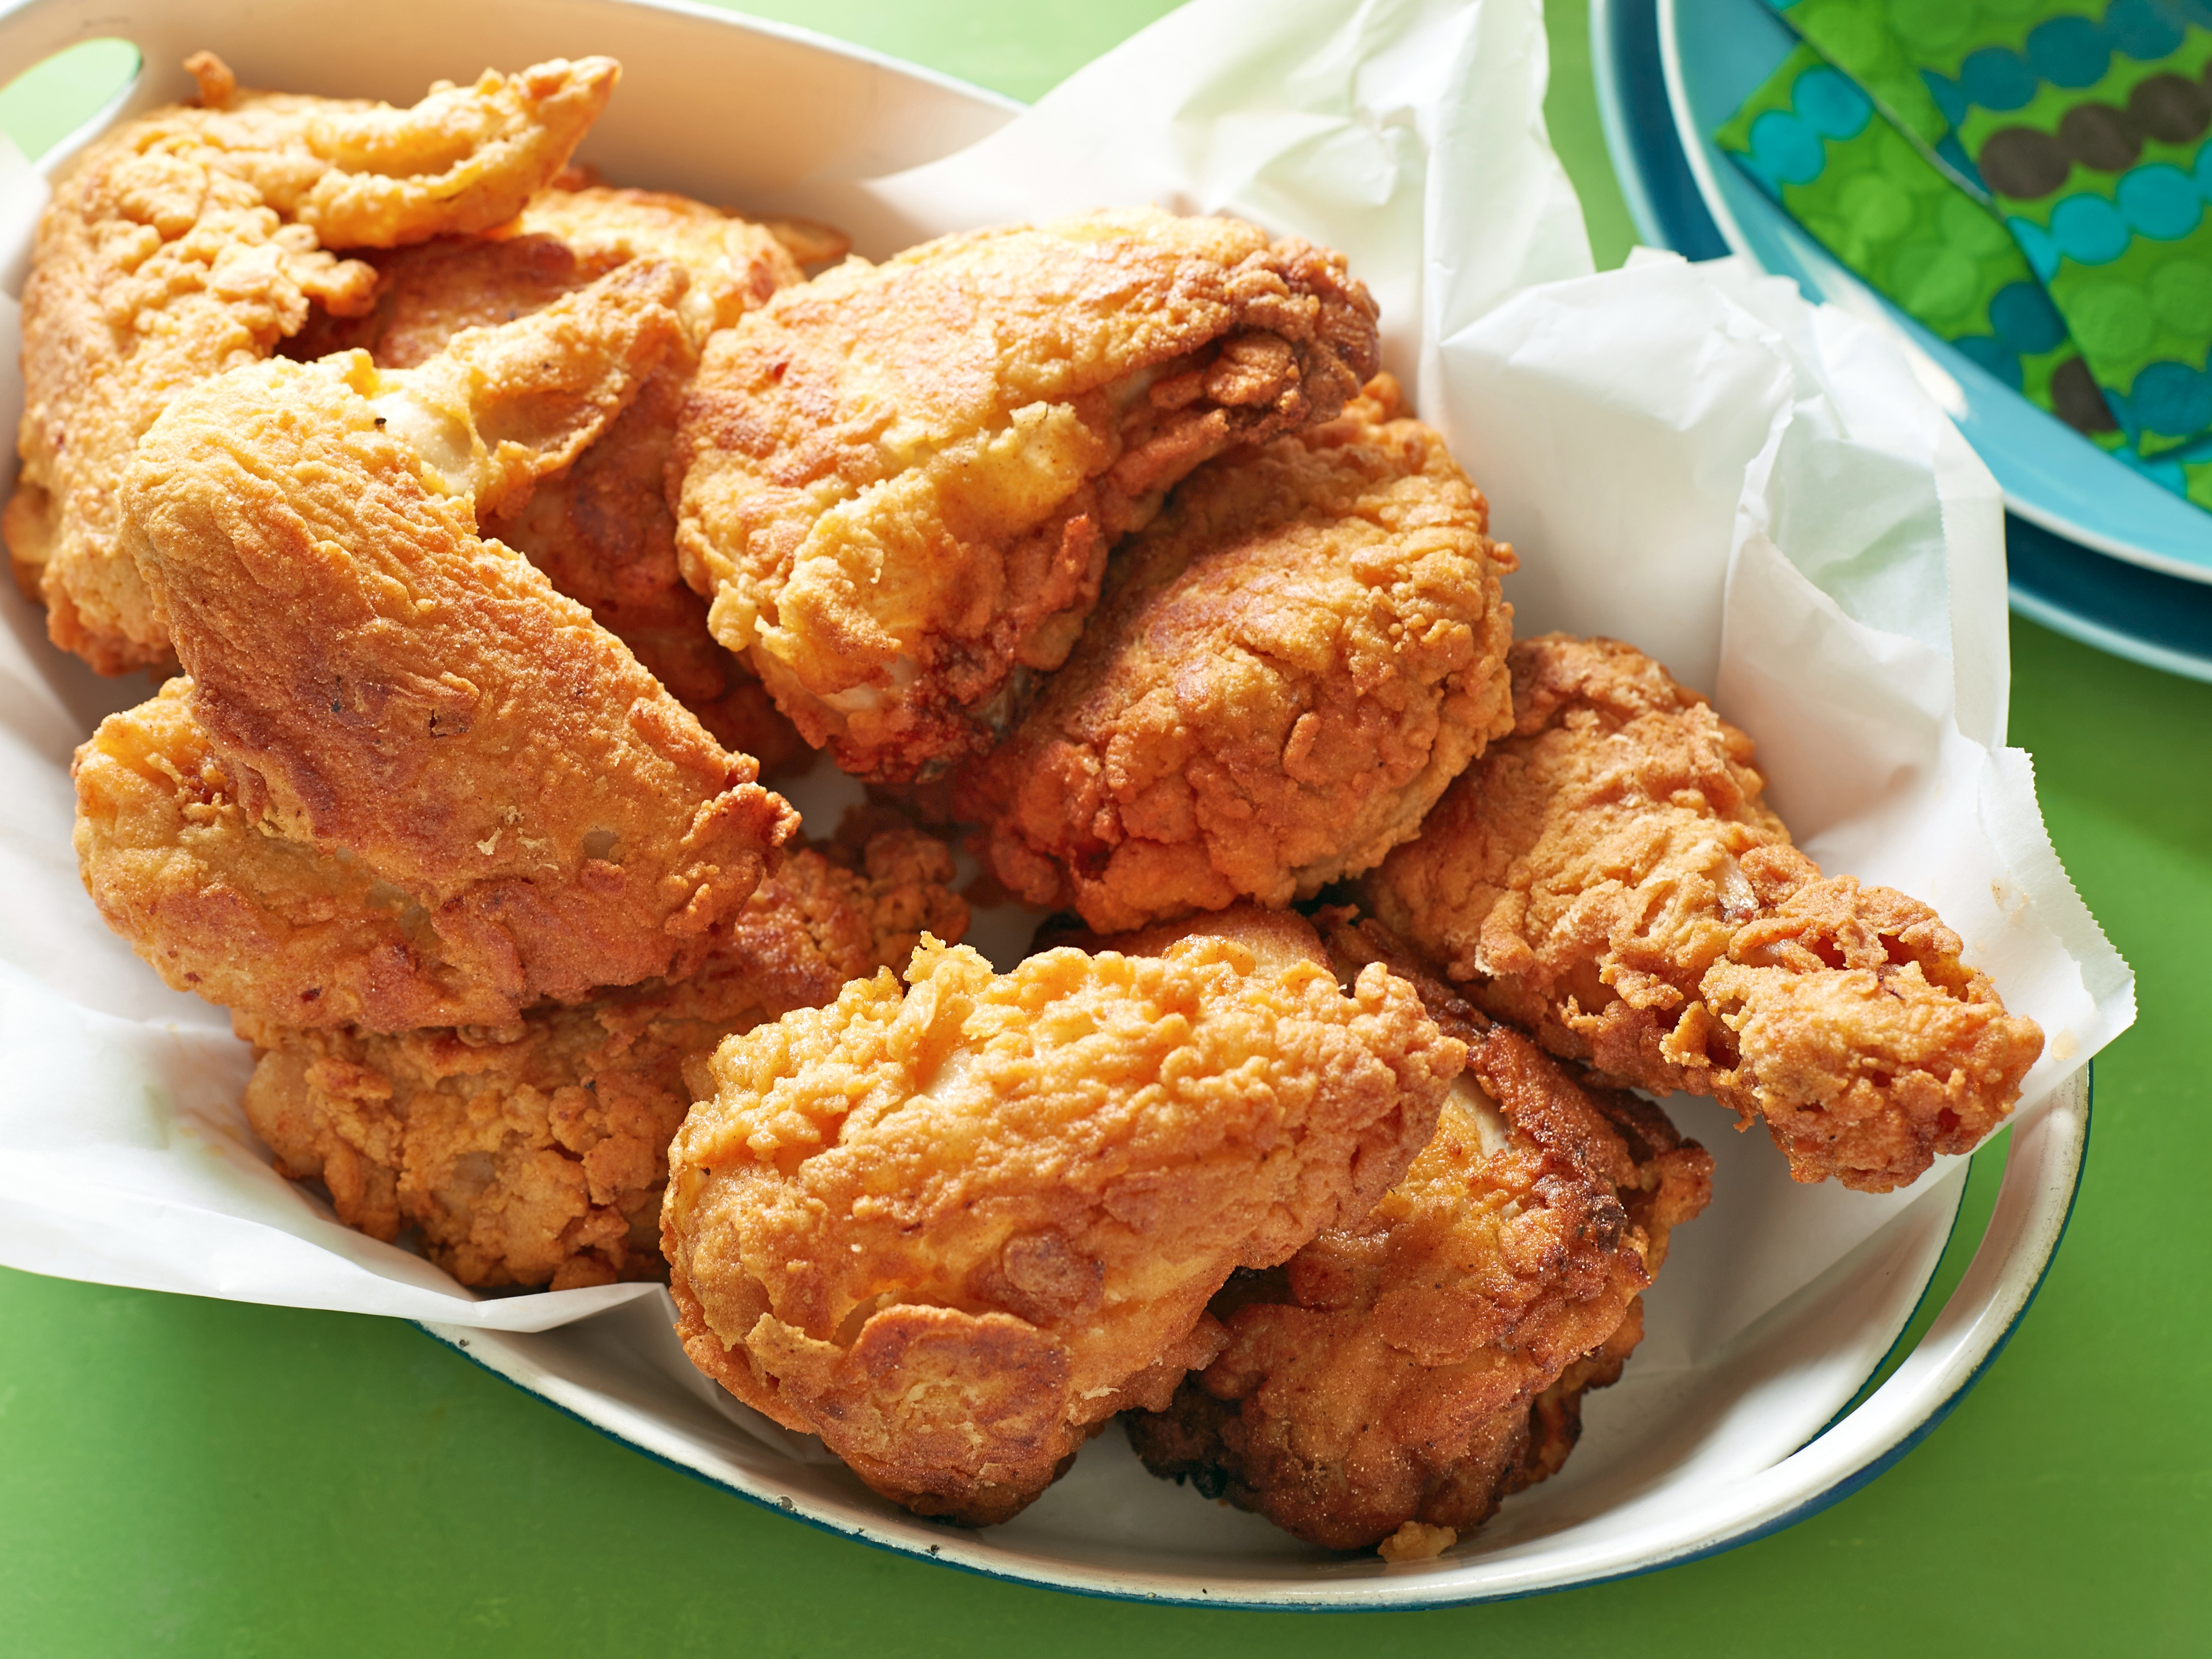 Fried Chicken Wallpapers High Quality Download Free